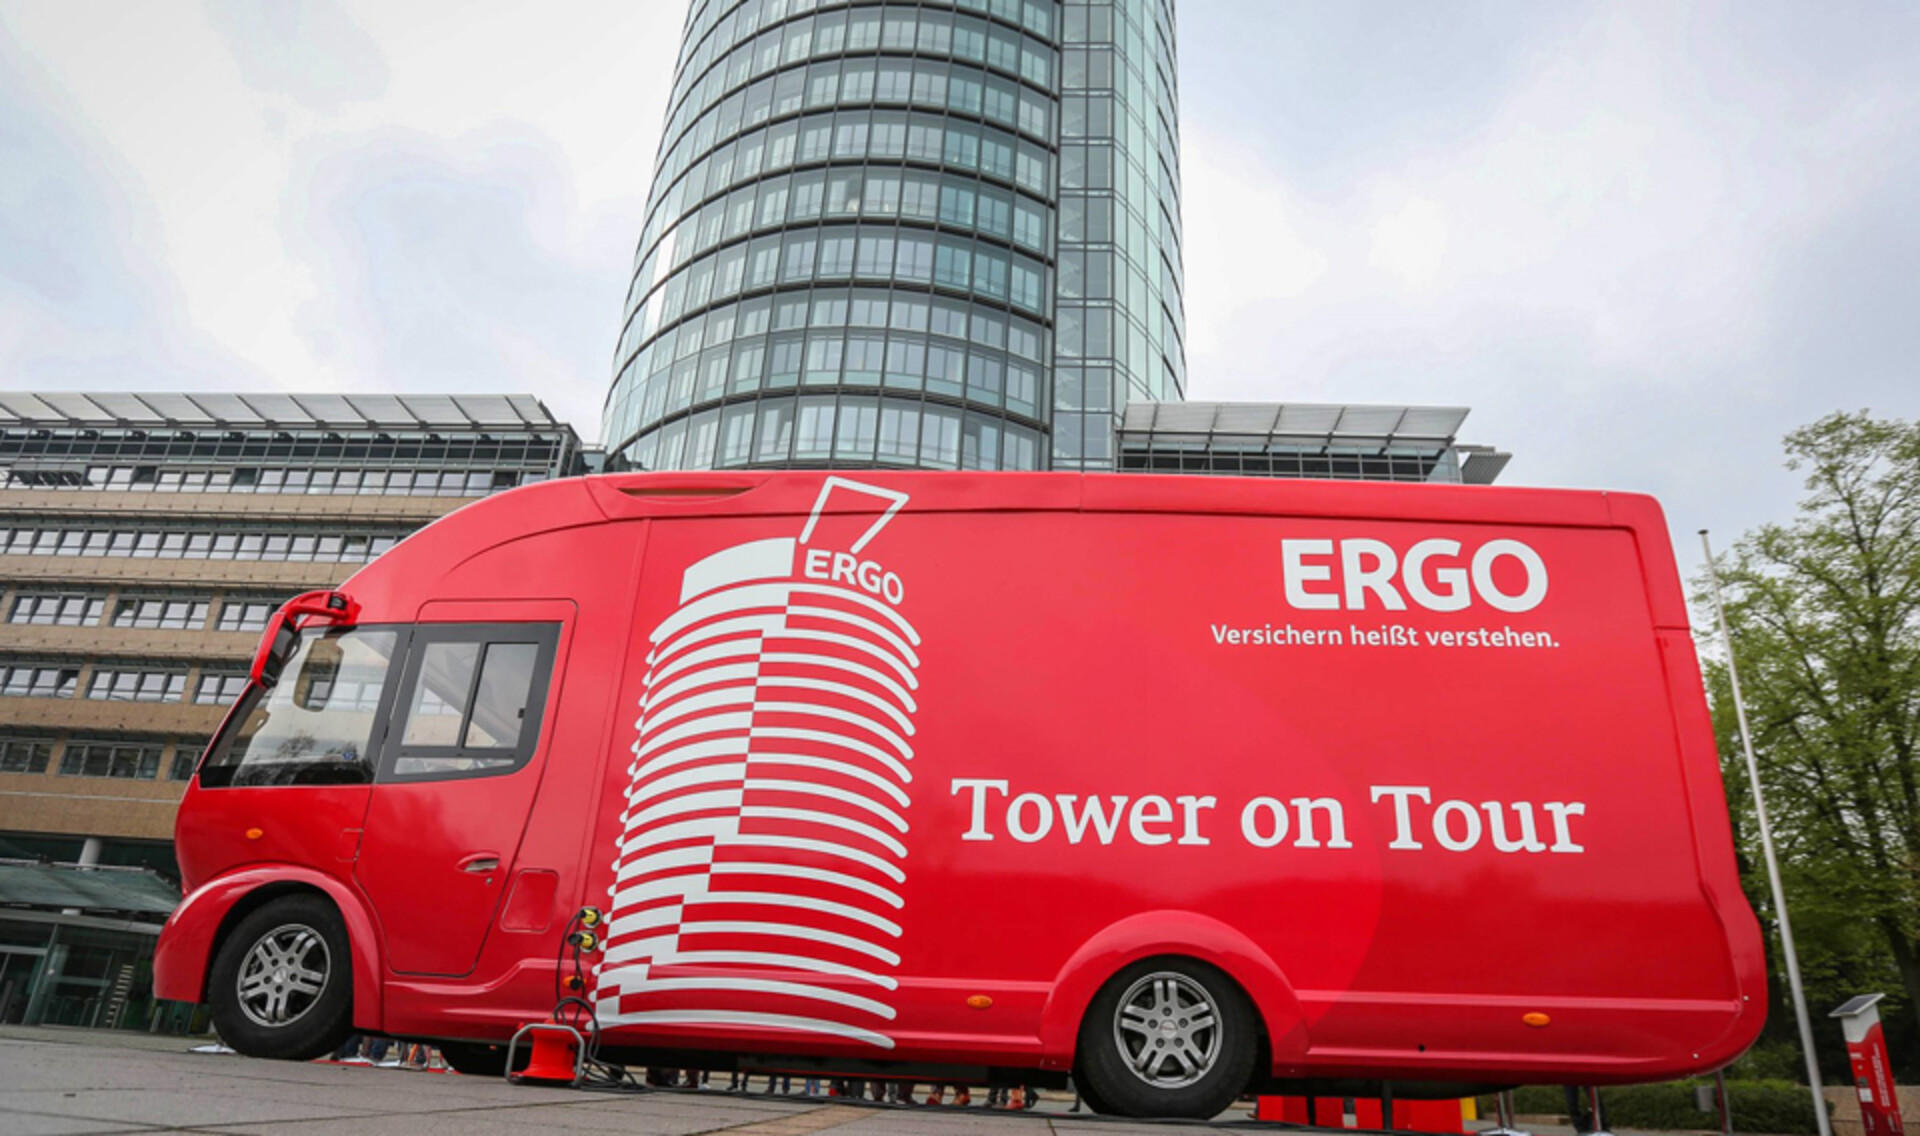 ergo-tower-on-tour-4-Infobus.jpg